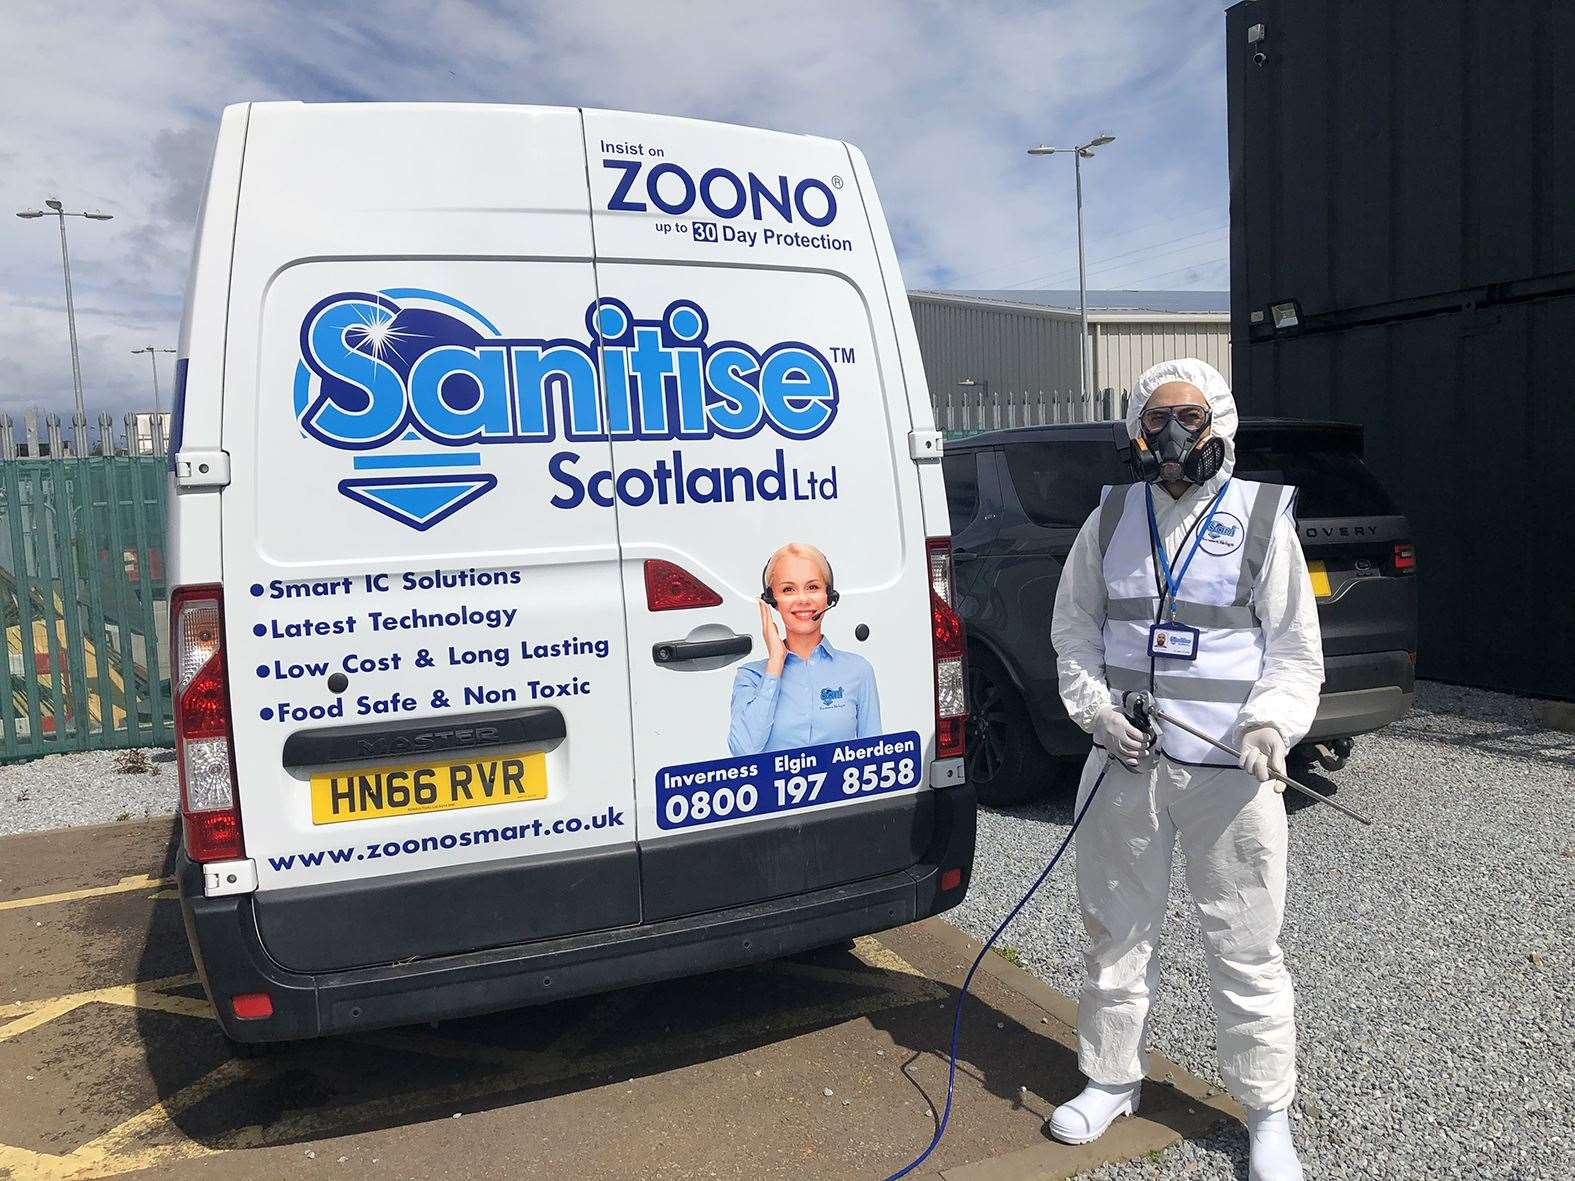 Sanitise Scotland has launched with two vans in the road and expansions plans could increase this to 10 in the near future.